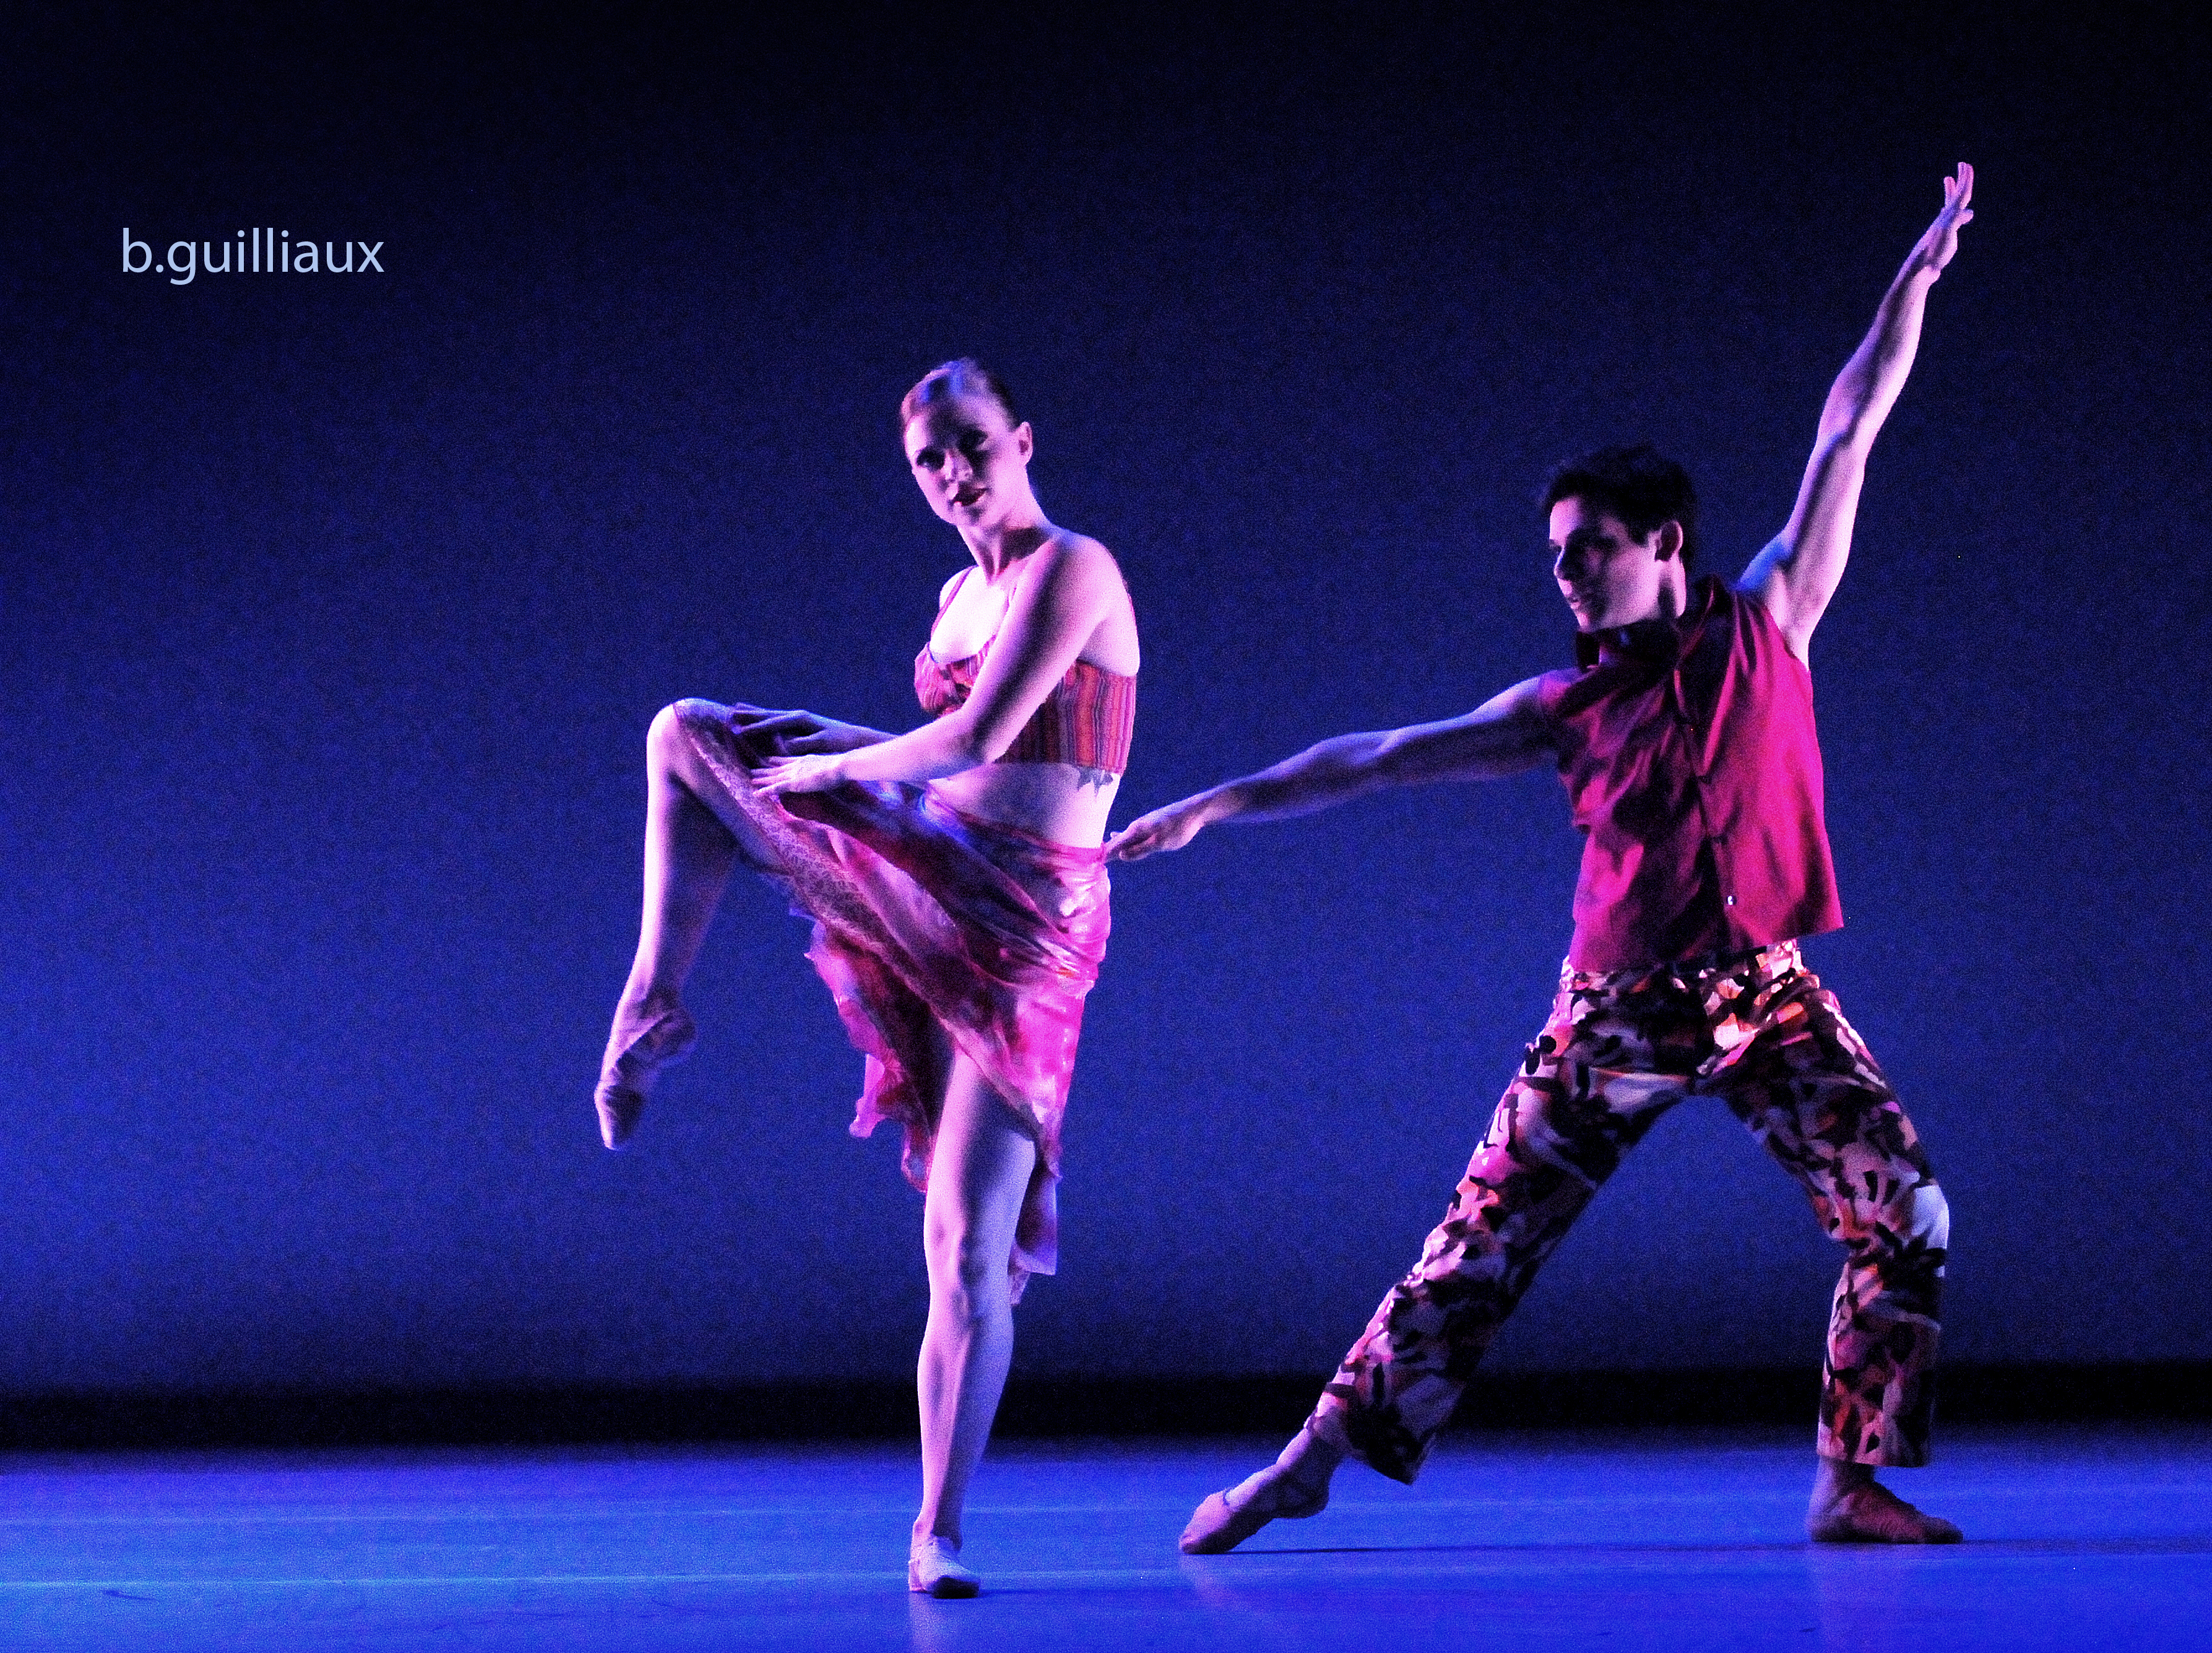 Dallas Chamber Symphony, Bruce Wood Dance Project, Piazzola